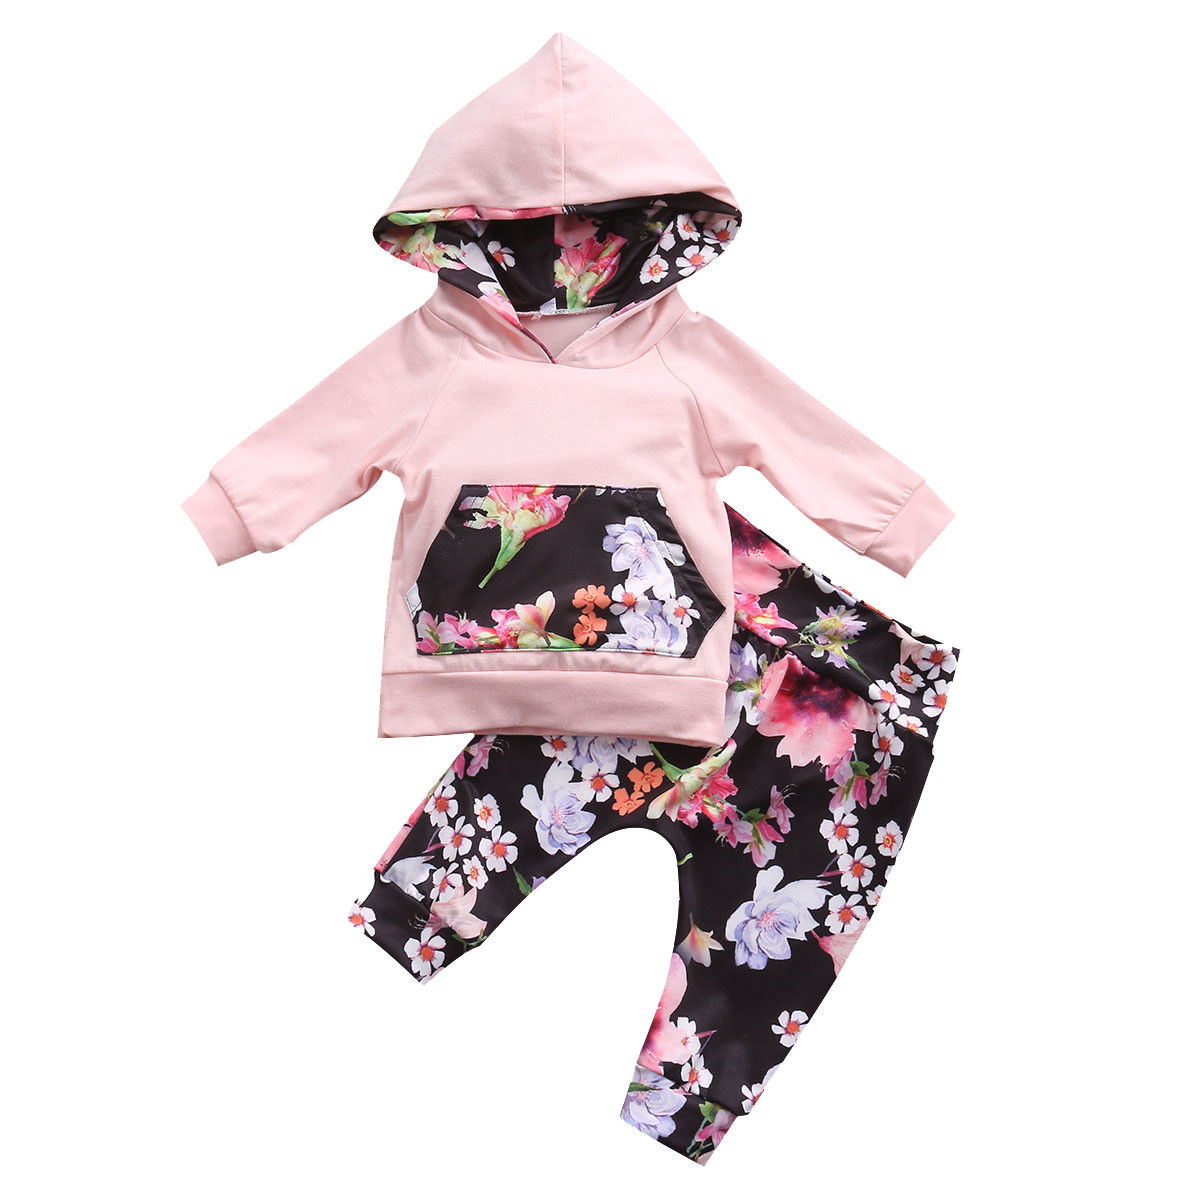 Infant Newborn Baby Girls Clothes Set Hooded Tops Long Sleeve T-shirt Floral Long Leggings Outfit Children Clothing Autumn 2PCs 2pcs ruffles newborn baby clothes 2017 summer princess girls floral dress tops baby bloomers shorts bottom outfits sunsuit 0 24m